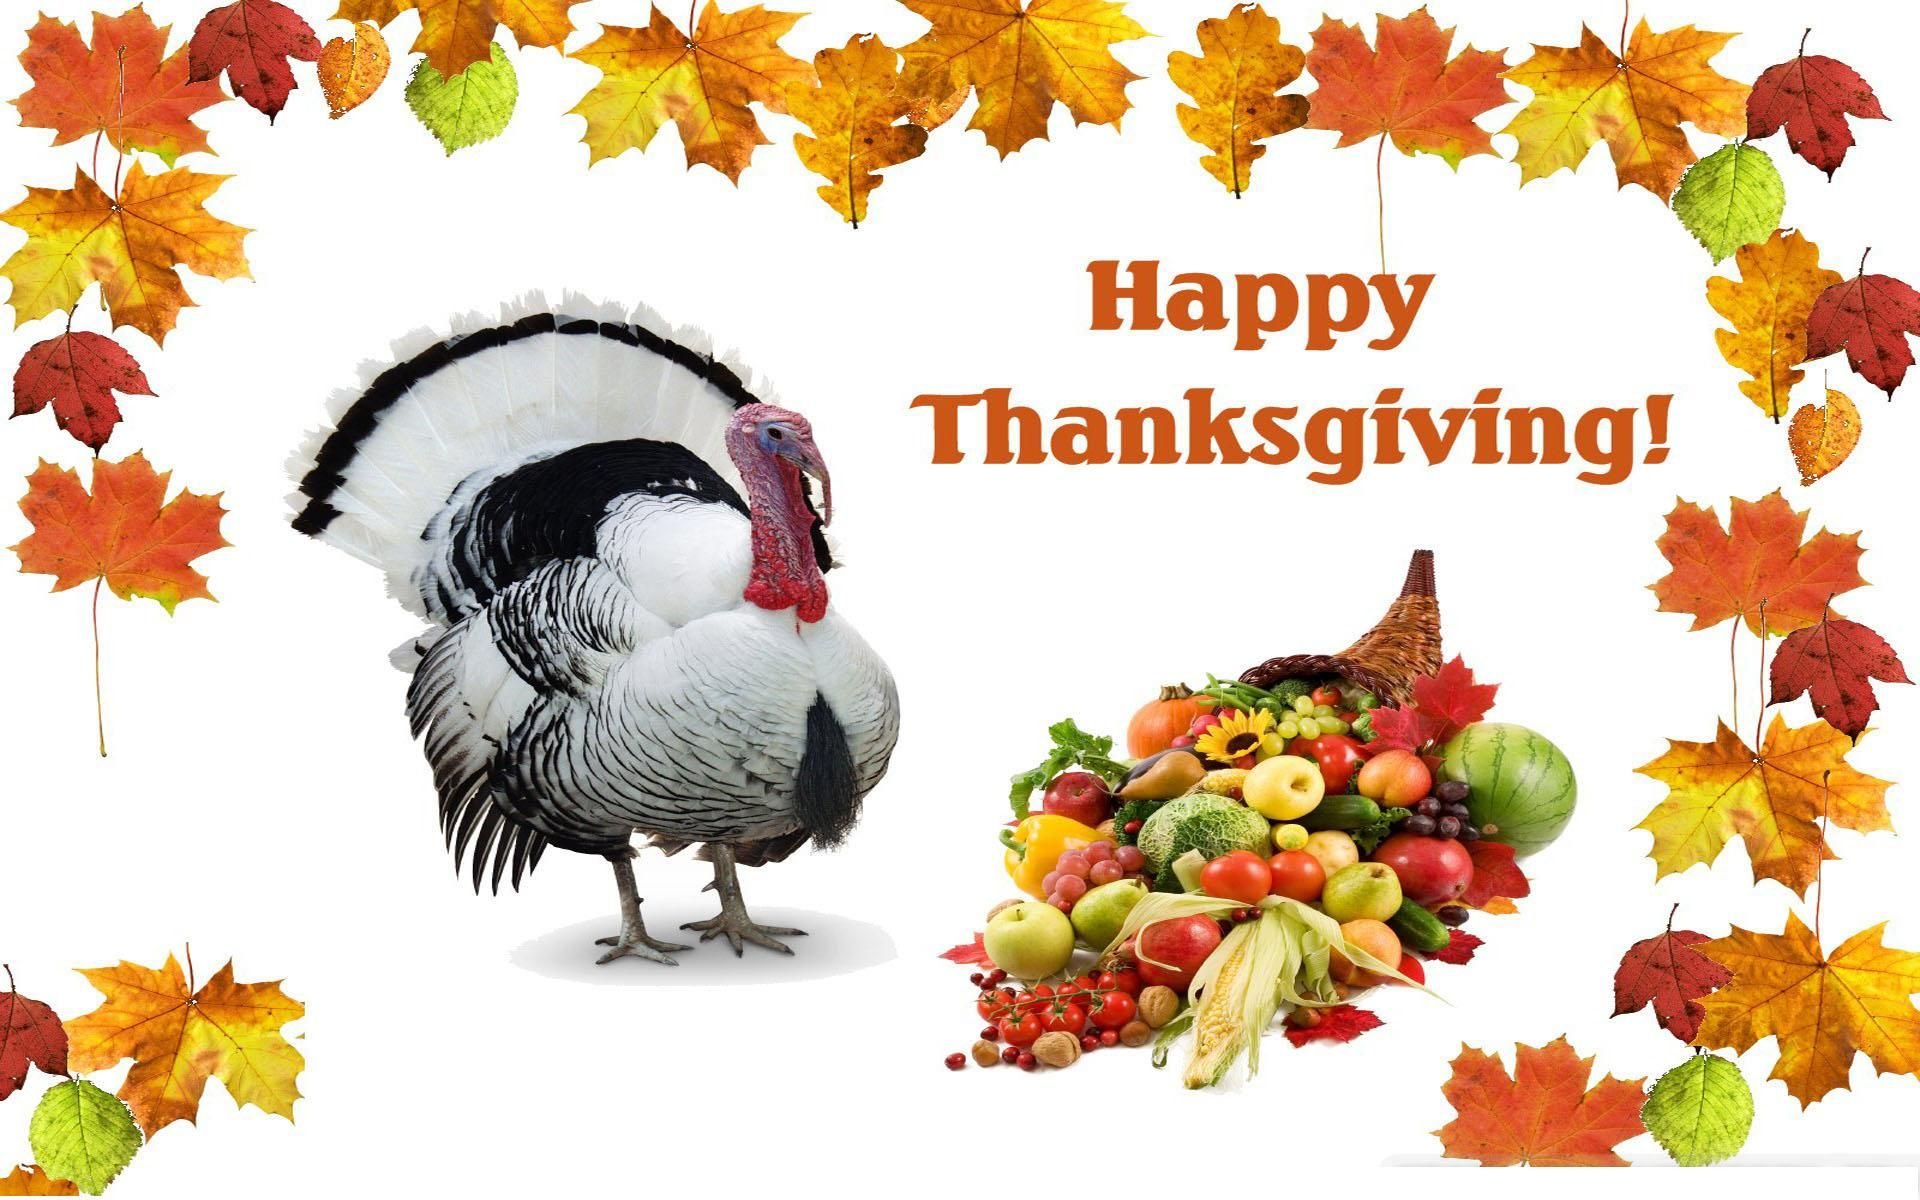 Animated happy thanksgiving pictures thanksgiving day animated happy thanksgiving pictures thanksgiving day pinterest thanksgiving pictures thanksgiving and happy thanksgiving kristyandbryce Images